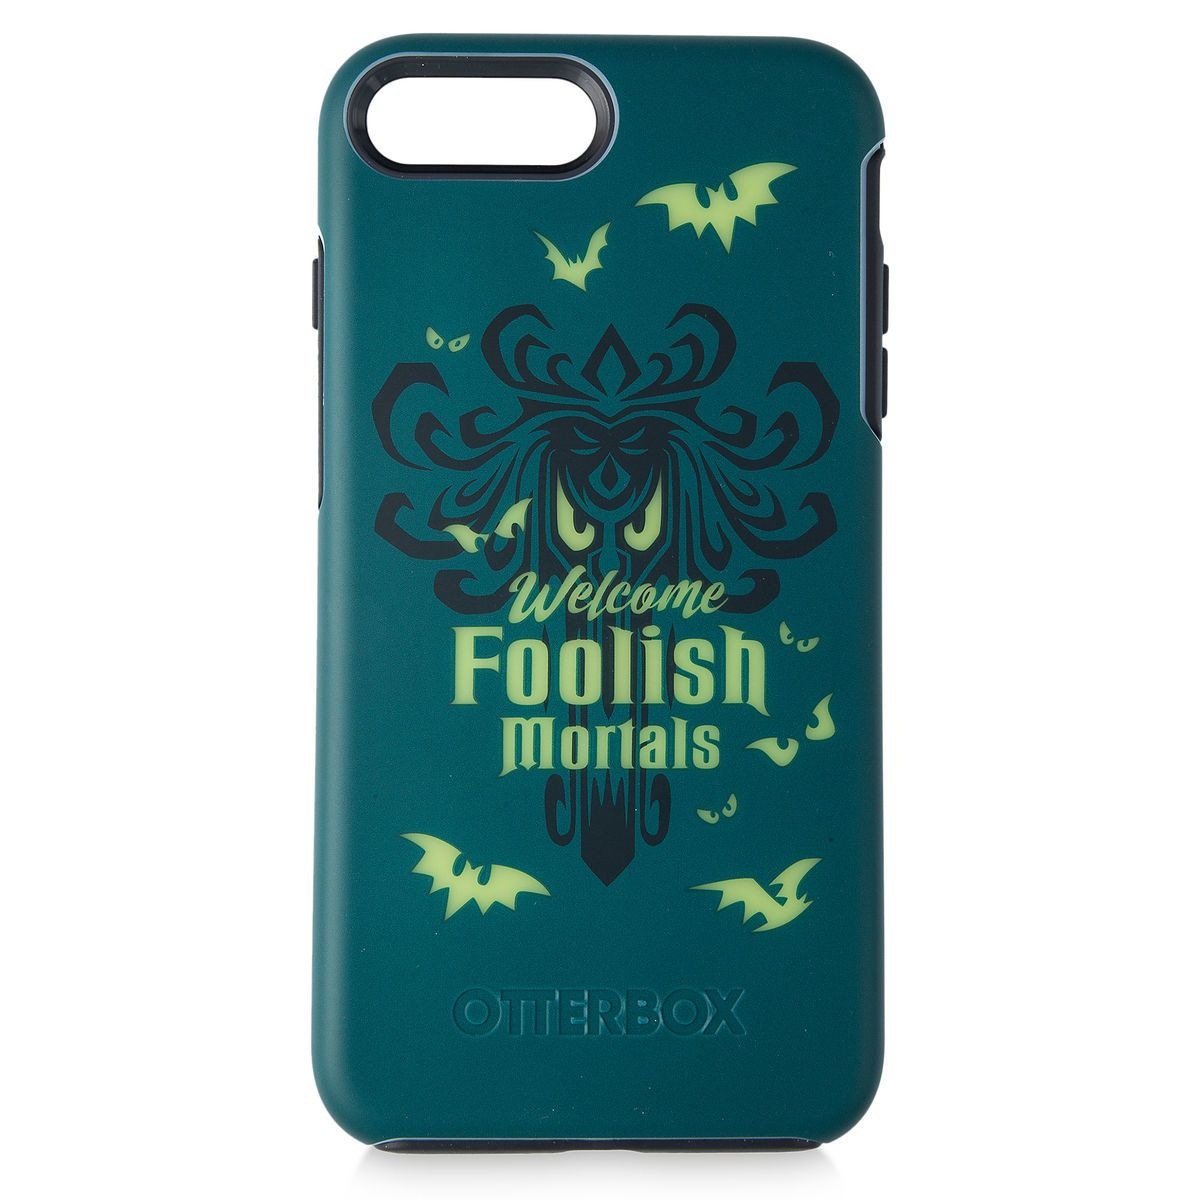 1b8a6b1592 The Haunted Mansion OtterBox iPhone 8/7 Plus Case   Disney - Haunted ...